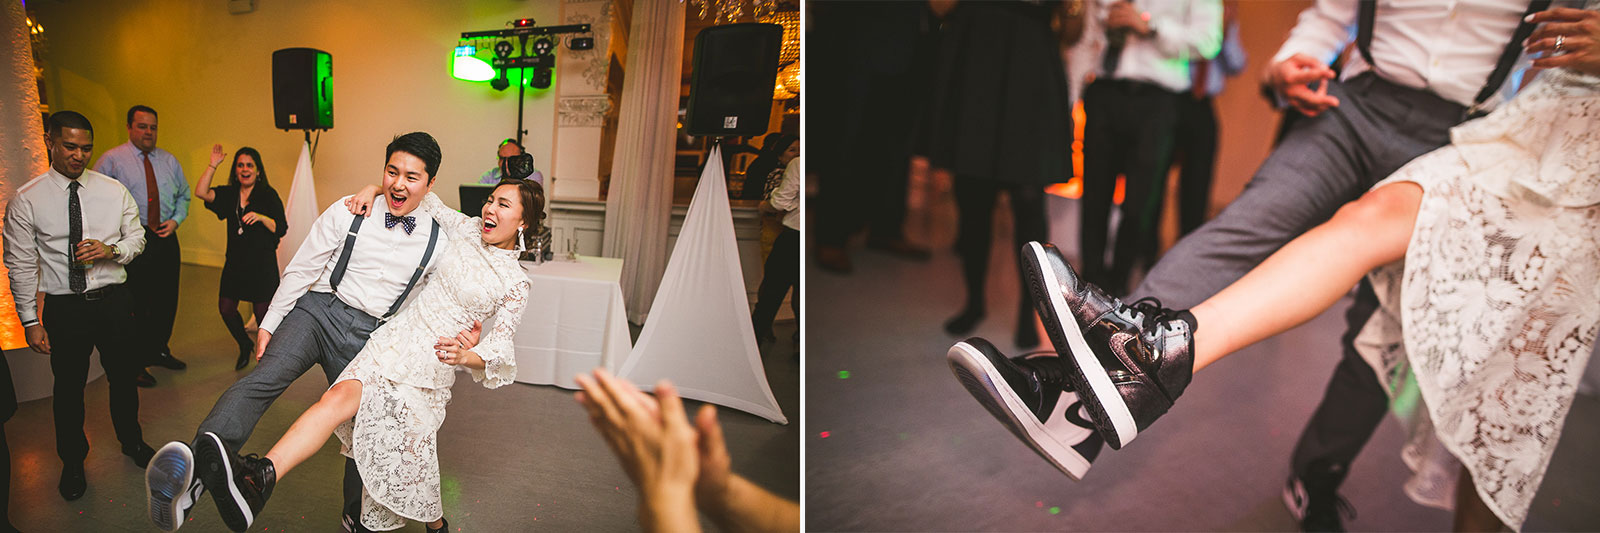 44 michael jordan shoes at room 1520 wedding - Rebecca + Doha // Wedding Photos at Room 1520 Chicago